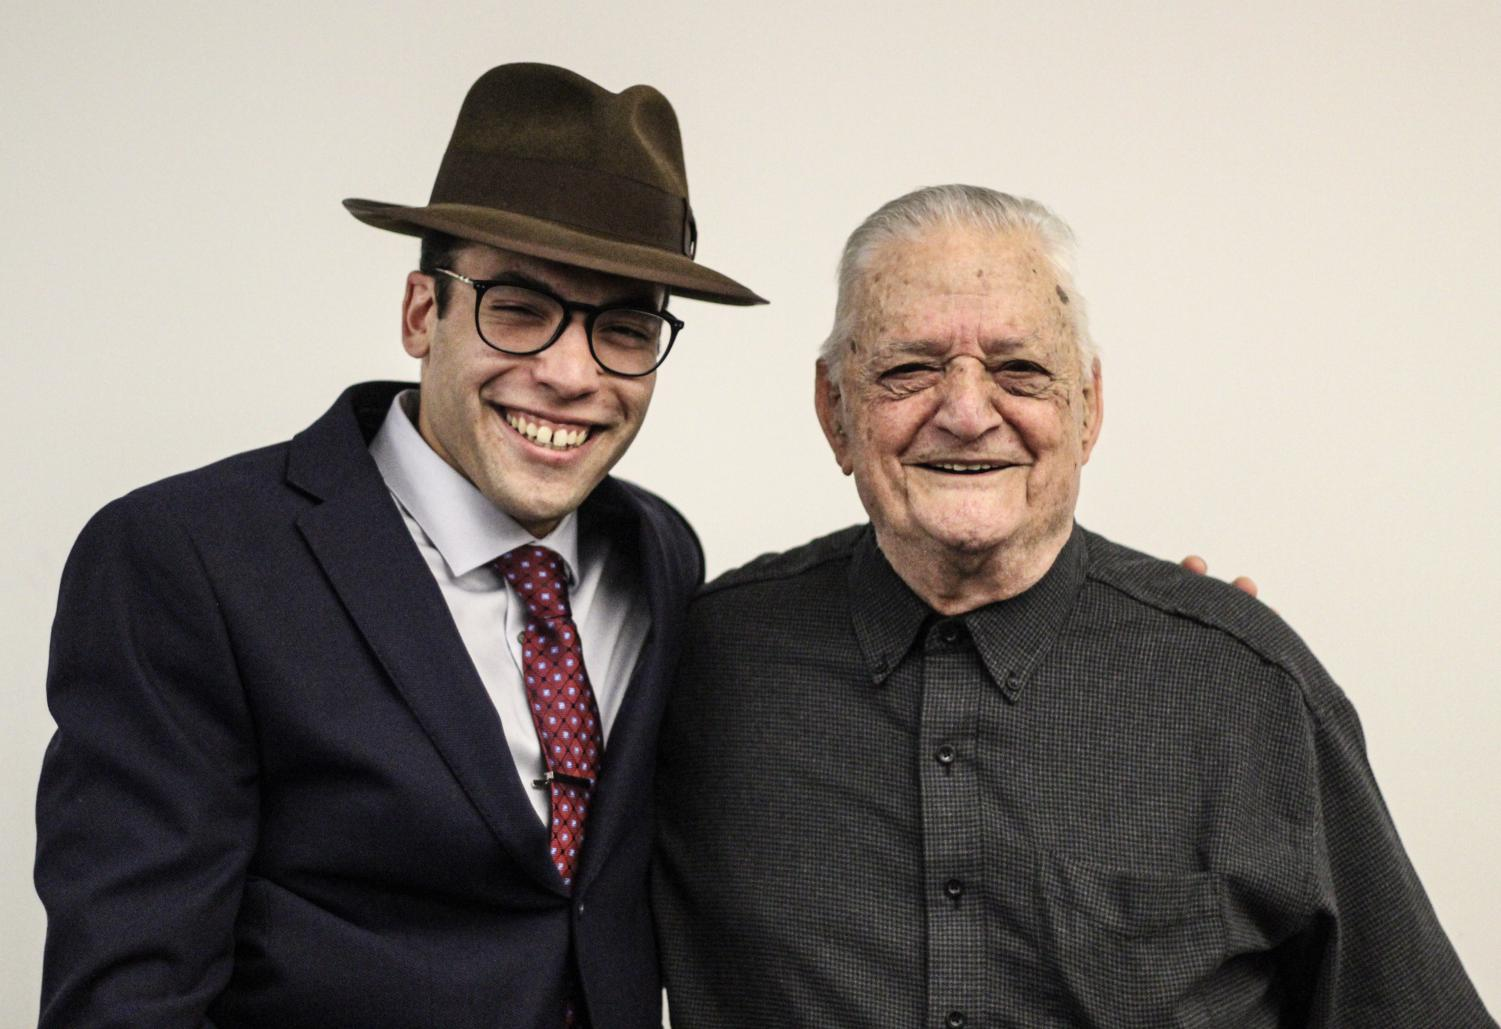 Emilio Guido (right) and Theofanis Orfanos pose for a picture after showcasing Guido's recent documentary